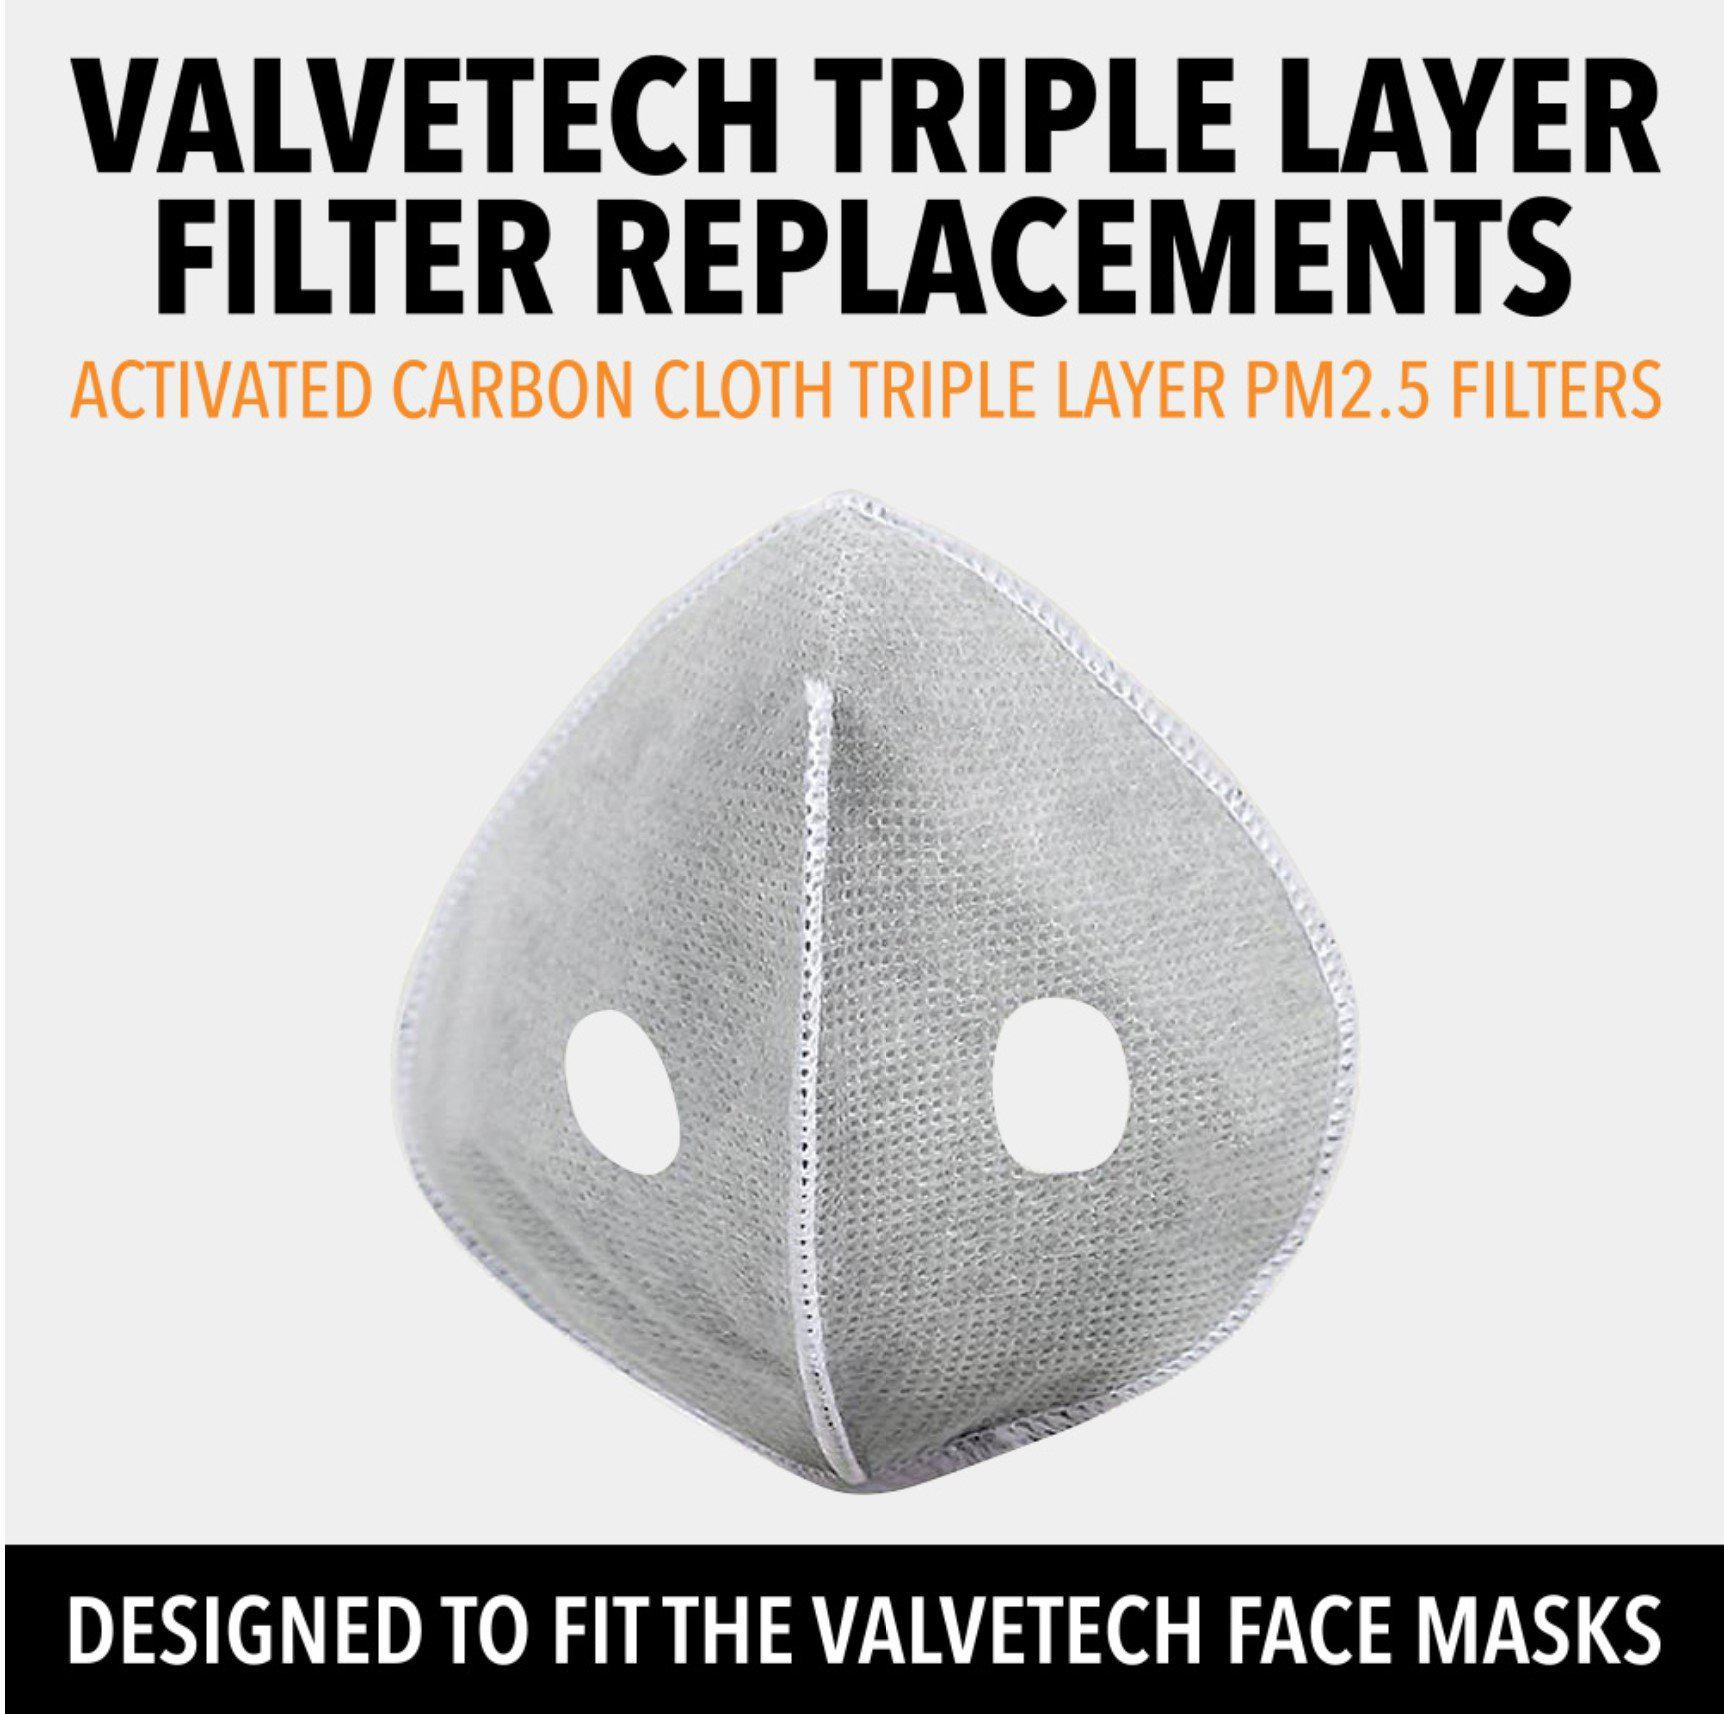 VALVETECH TRIPLE LAYER FILTER REPLACEMENTS